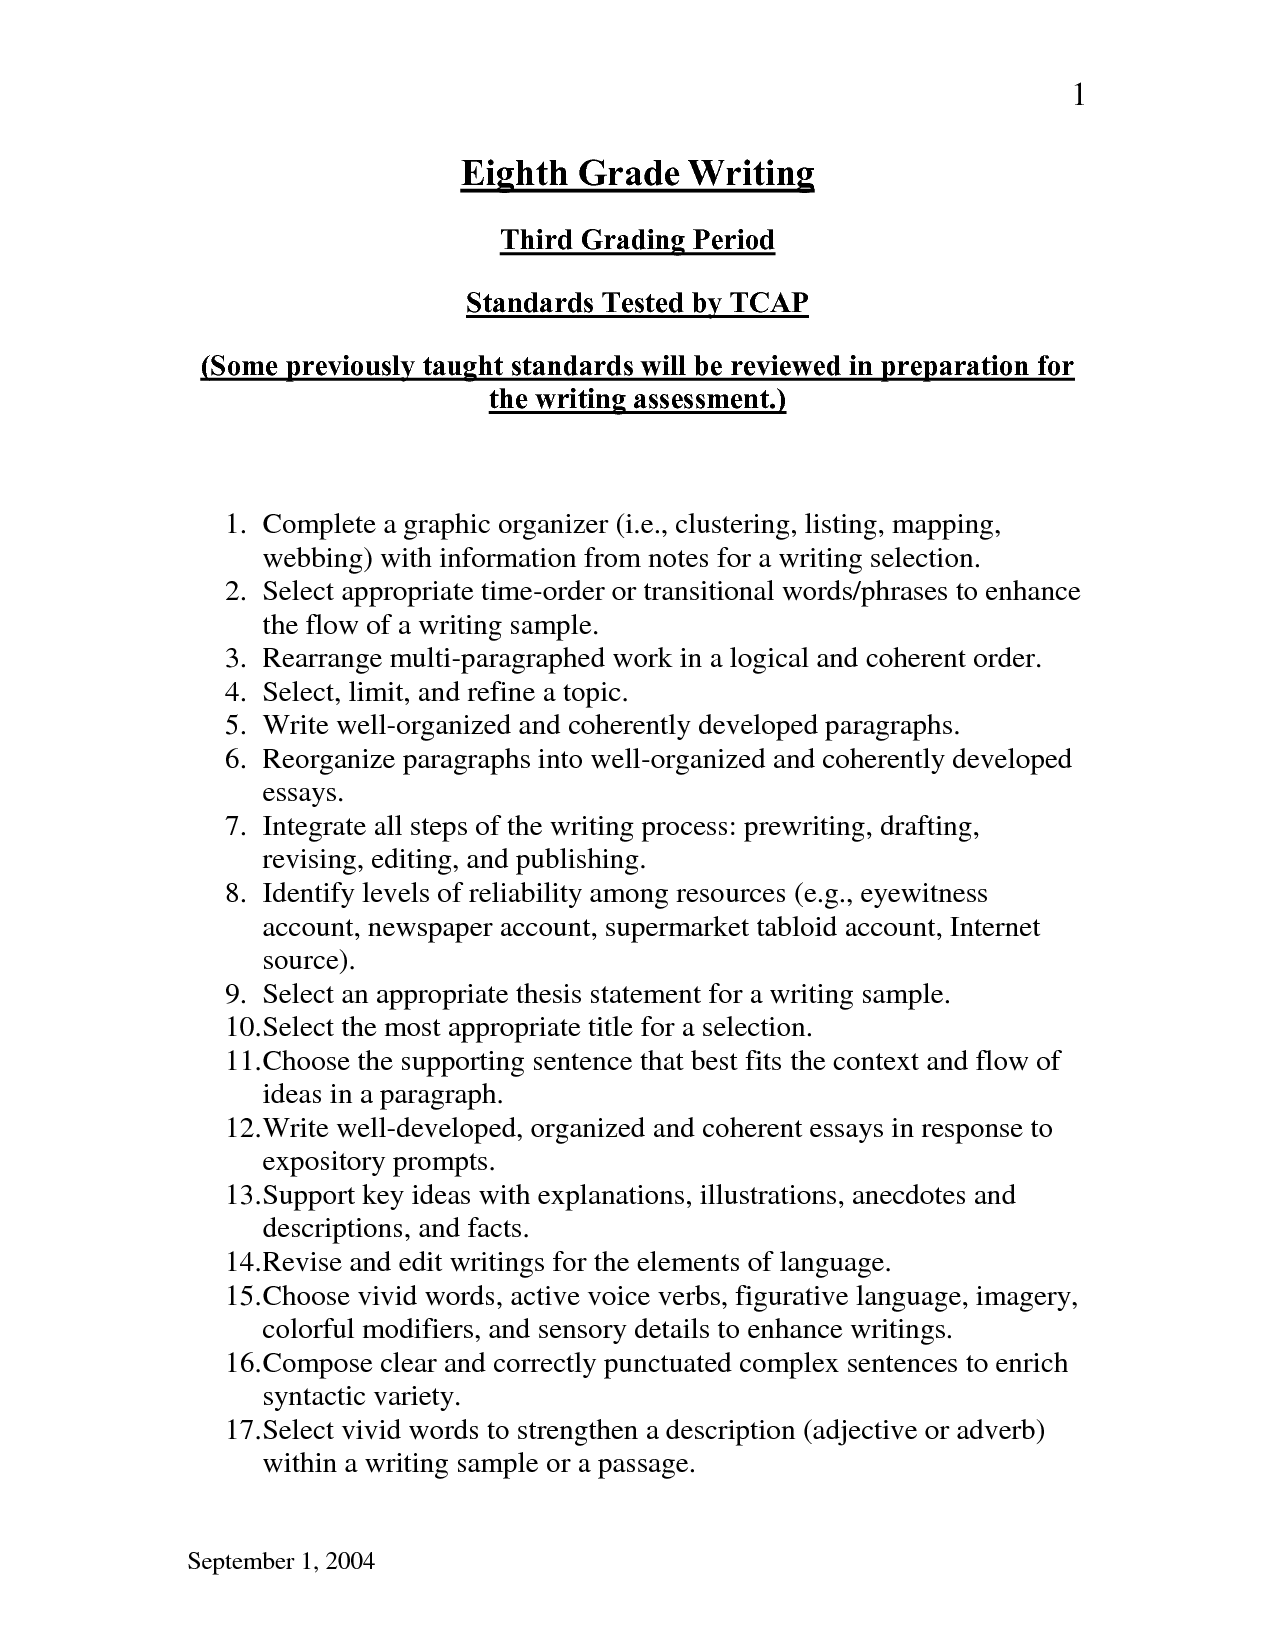 004 Expository Essay Ideas Example Writing Prompts For High School 1088622 Incredible Good Prompt Full